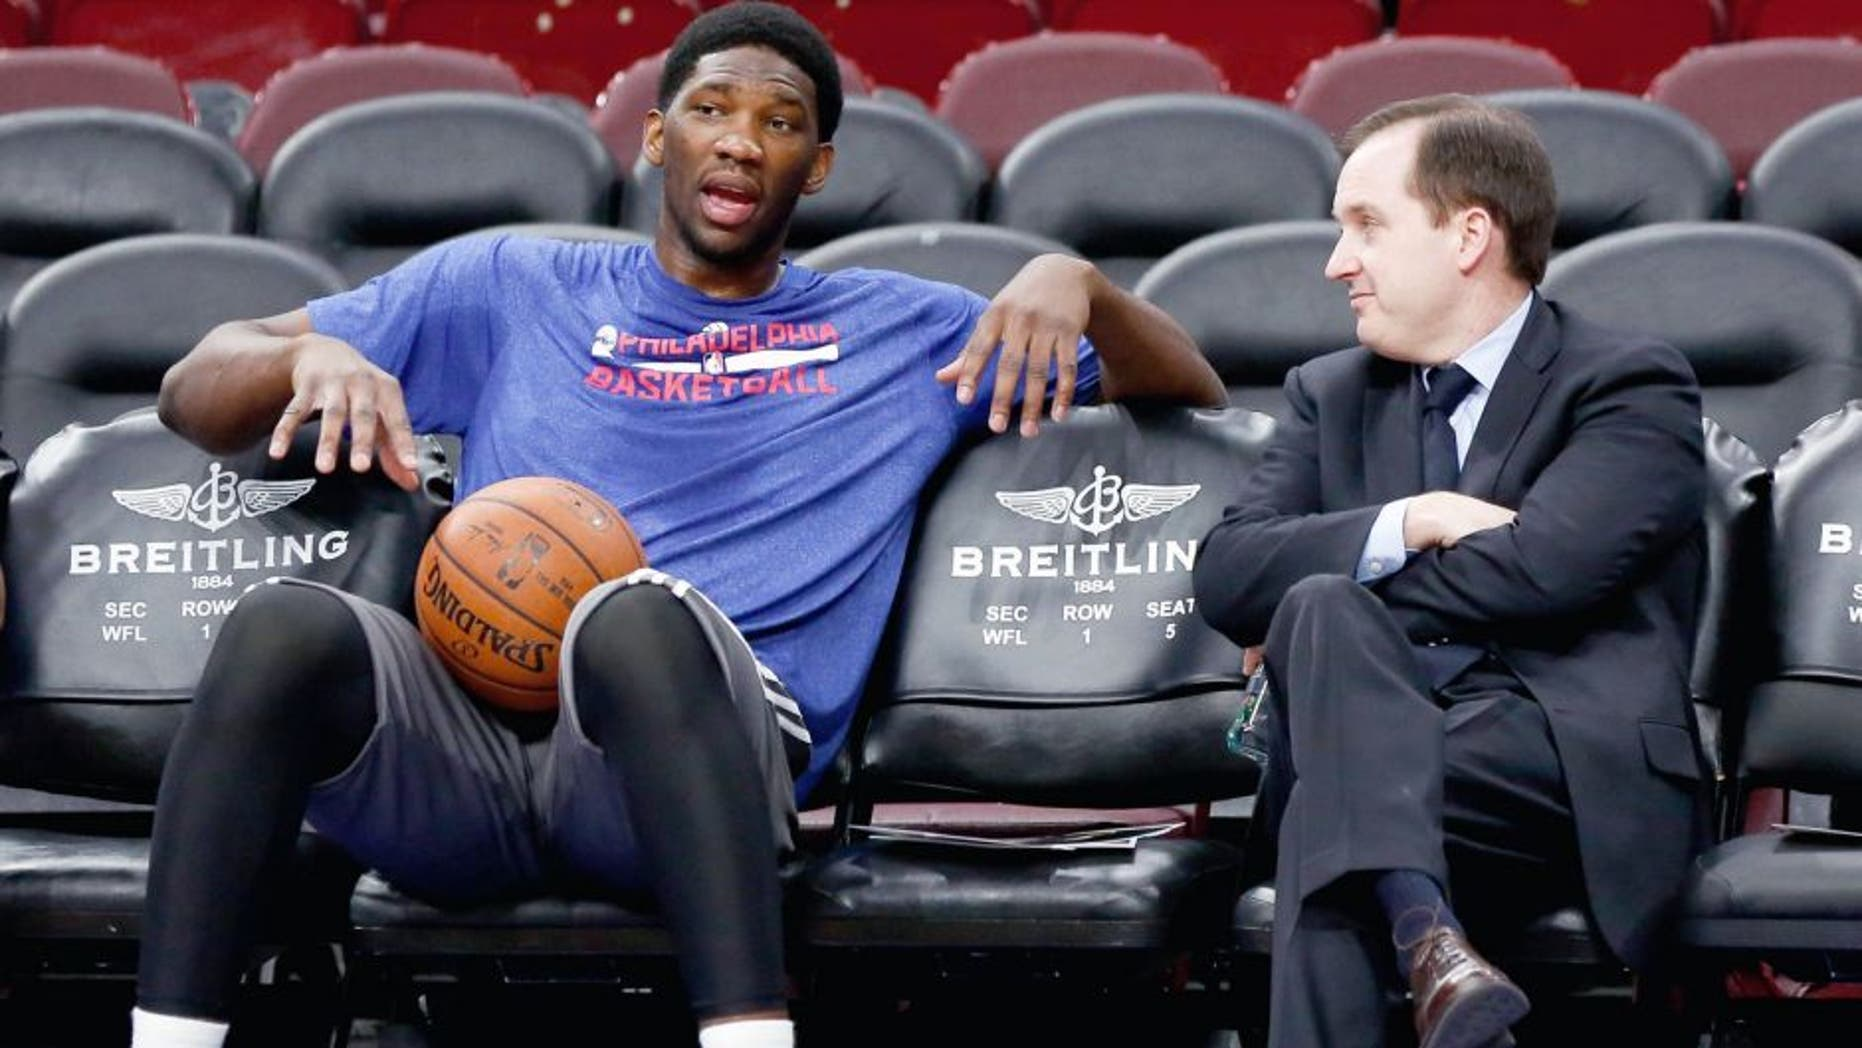 Dec 15, 2014; Philadelphia, PA, USA; Injured Philadelphia 76ers center Joel Embiid (left) talks with general manager and president Sam Hinkie (right) before a game against the Boston Celtics at Wells Fargo Center. Mandatory Credit: Bill Streicher-USA TODAY Sports